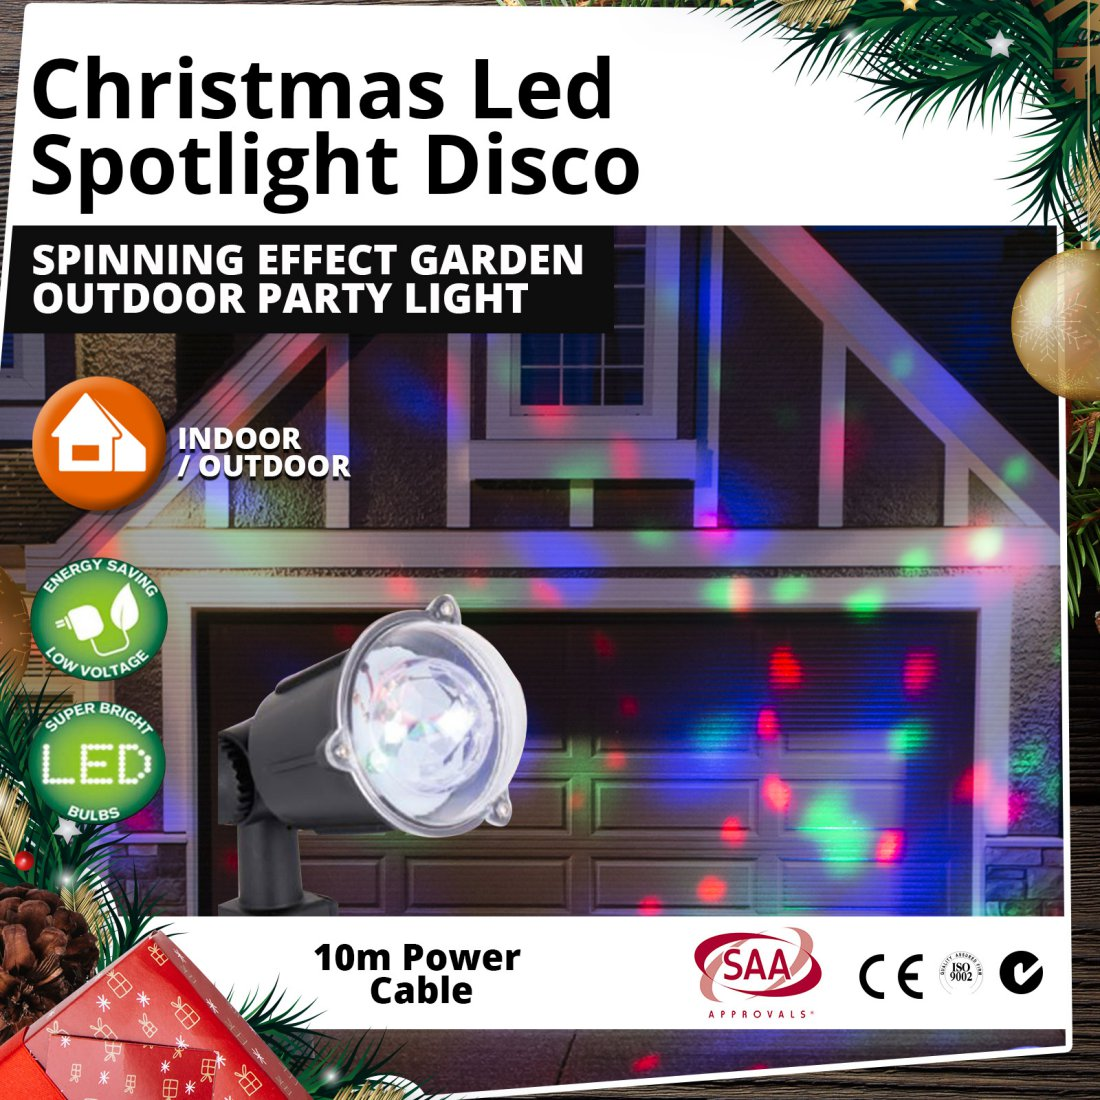 LED Spotlight Disco Spinning Effect Garden Outdoor Christmas Party Light